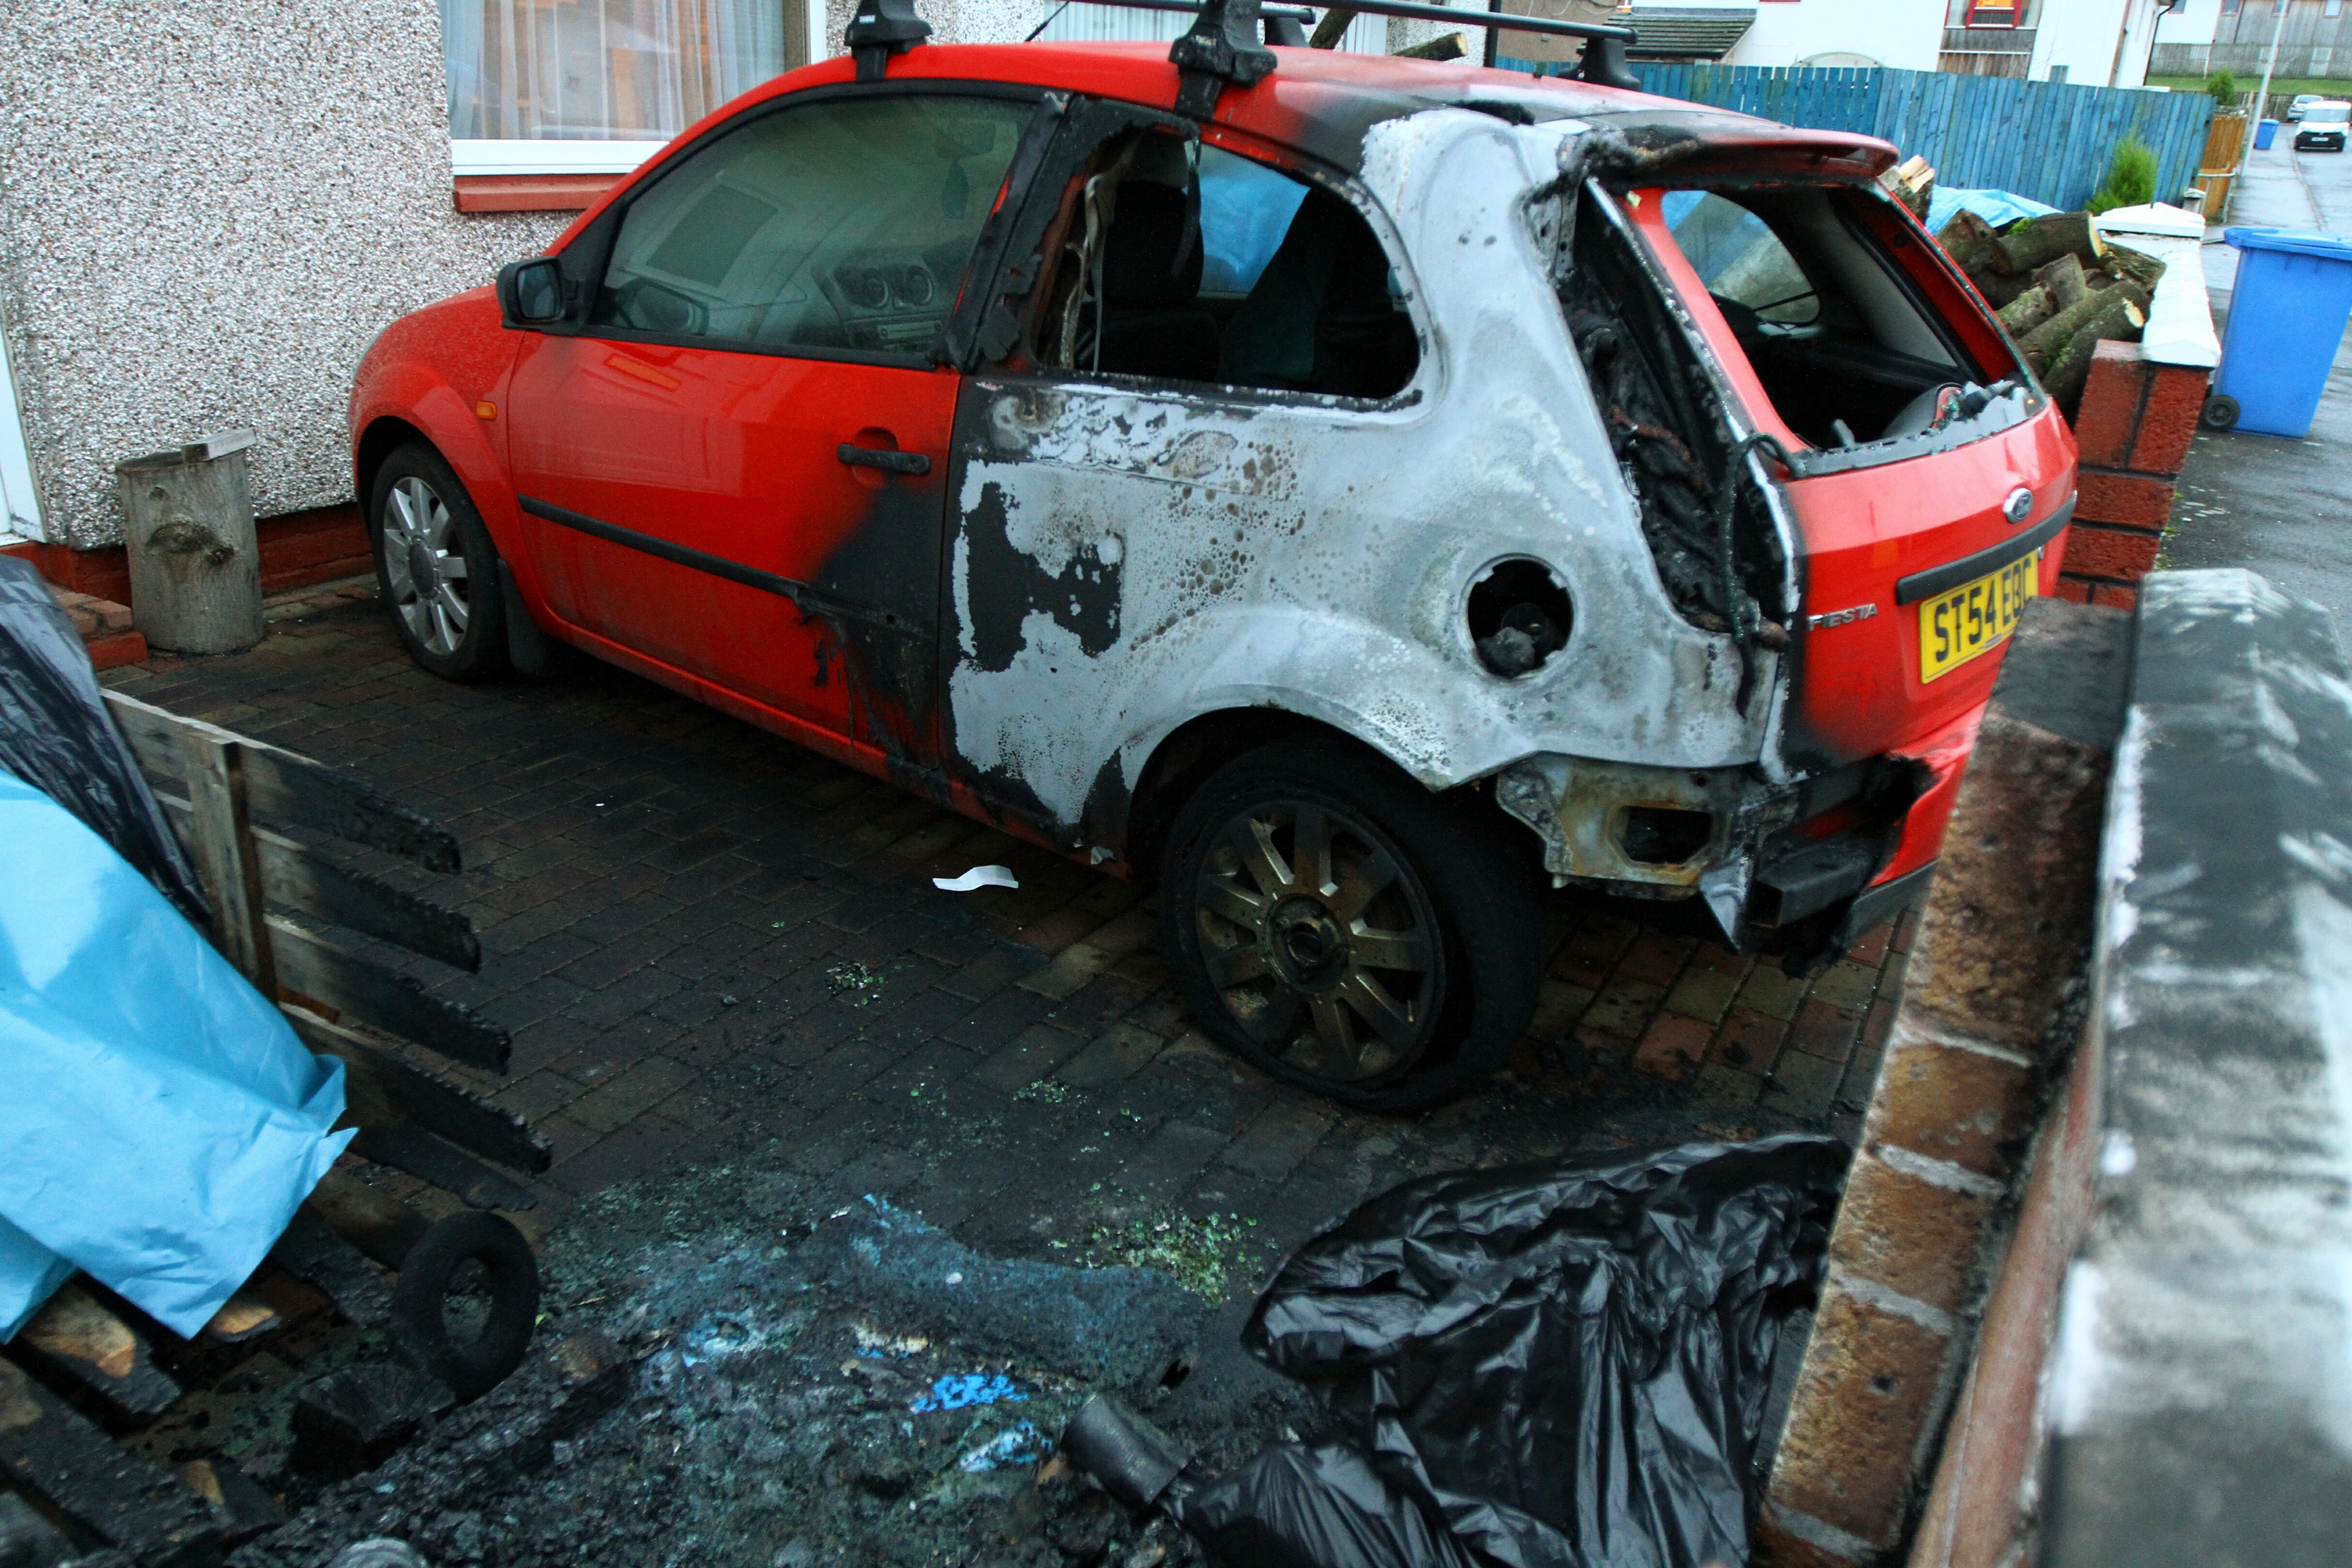 The fire damaged Fiesta at the house in Craigmount Road